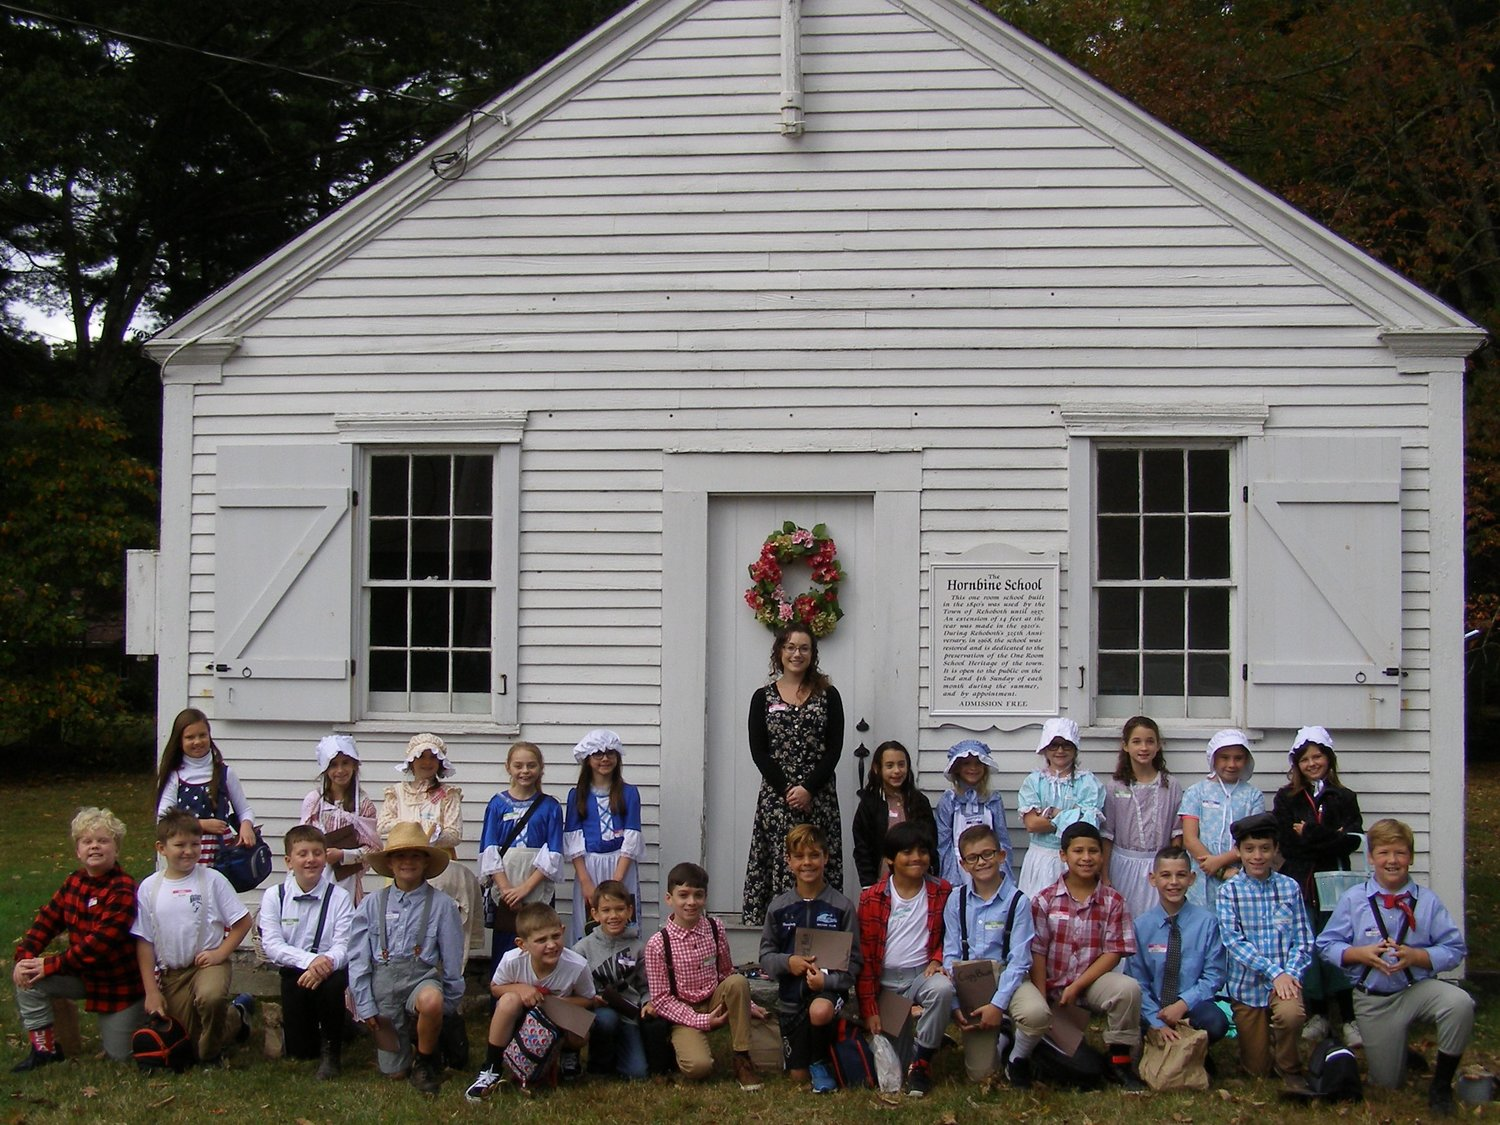 Taylor Sargent's fourth grade Palmer River class, room 44, pose for pictures out in front of the Hornbine School